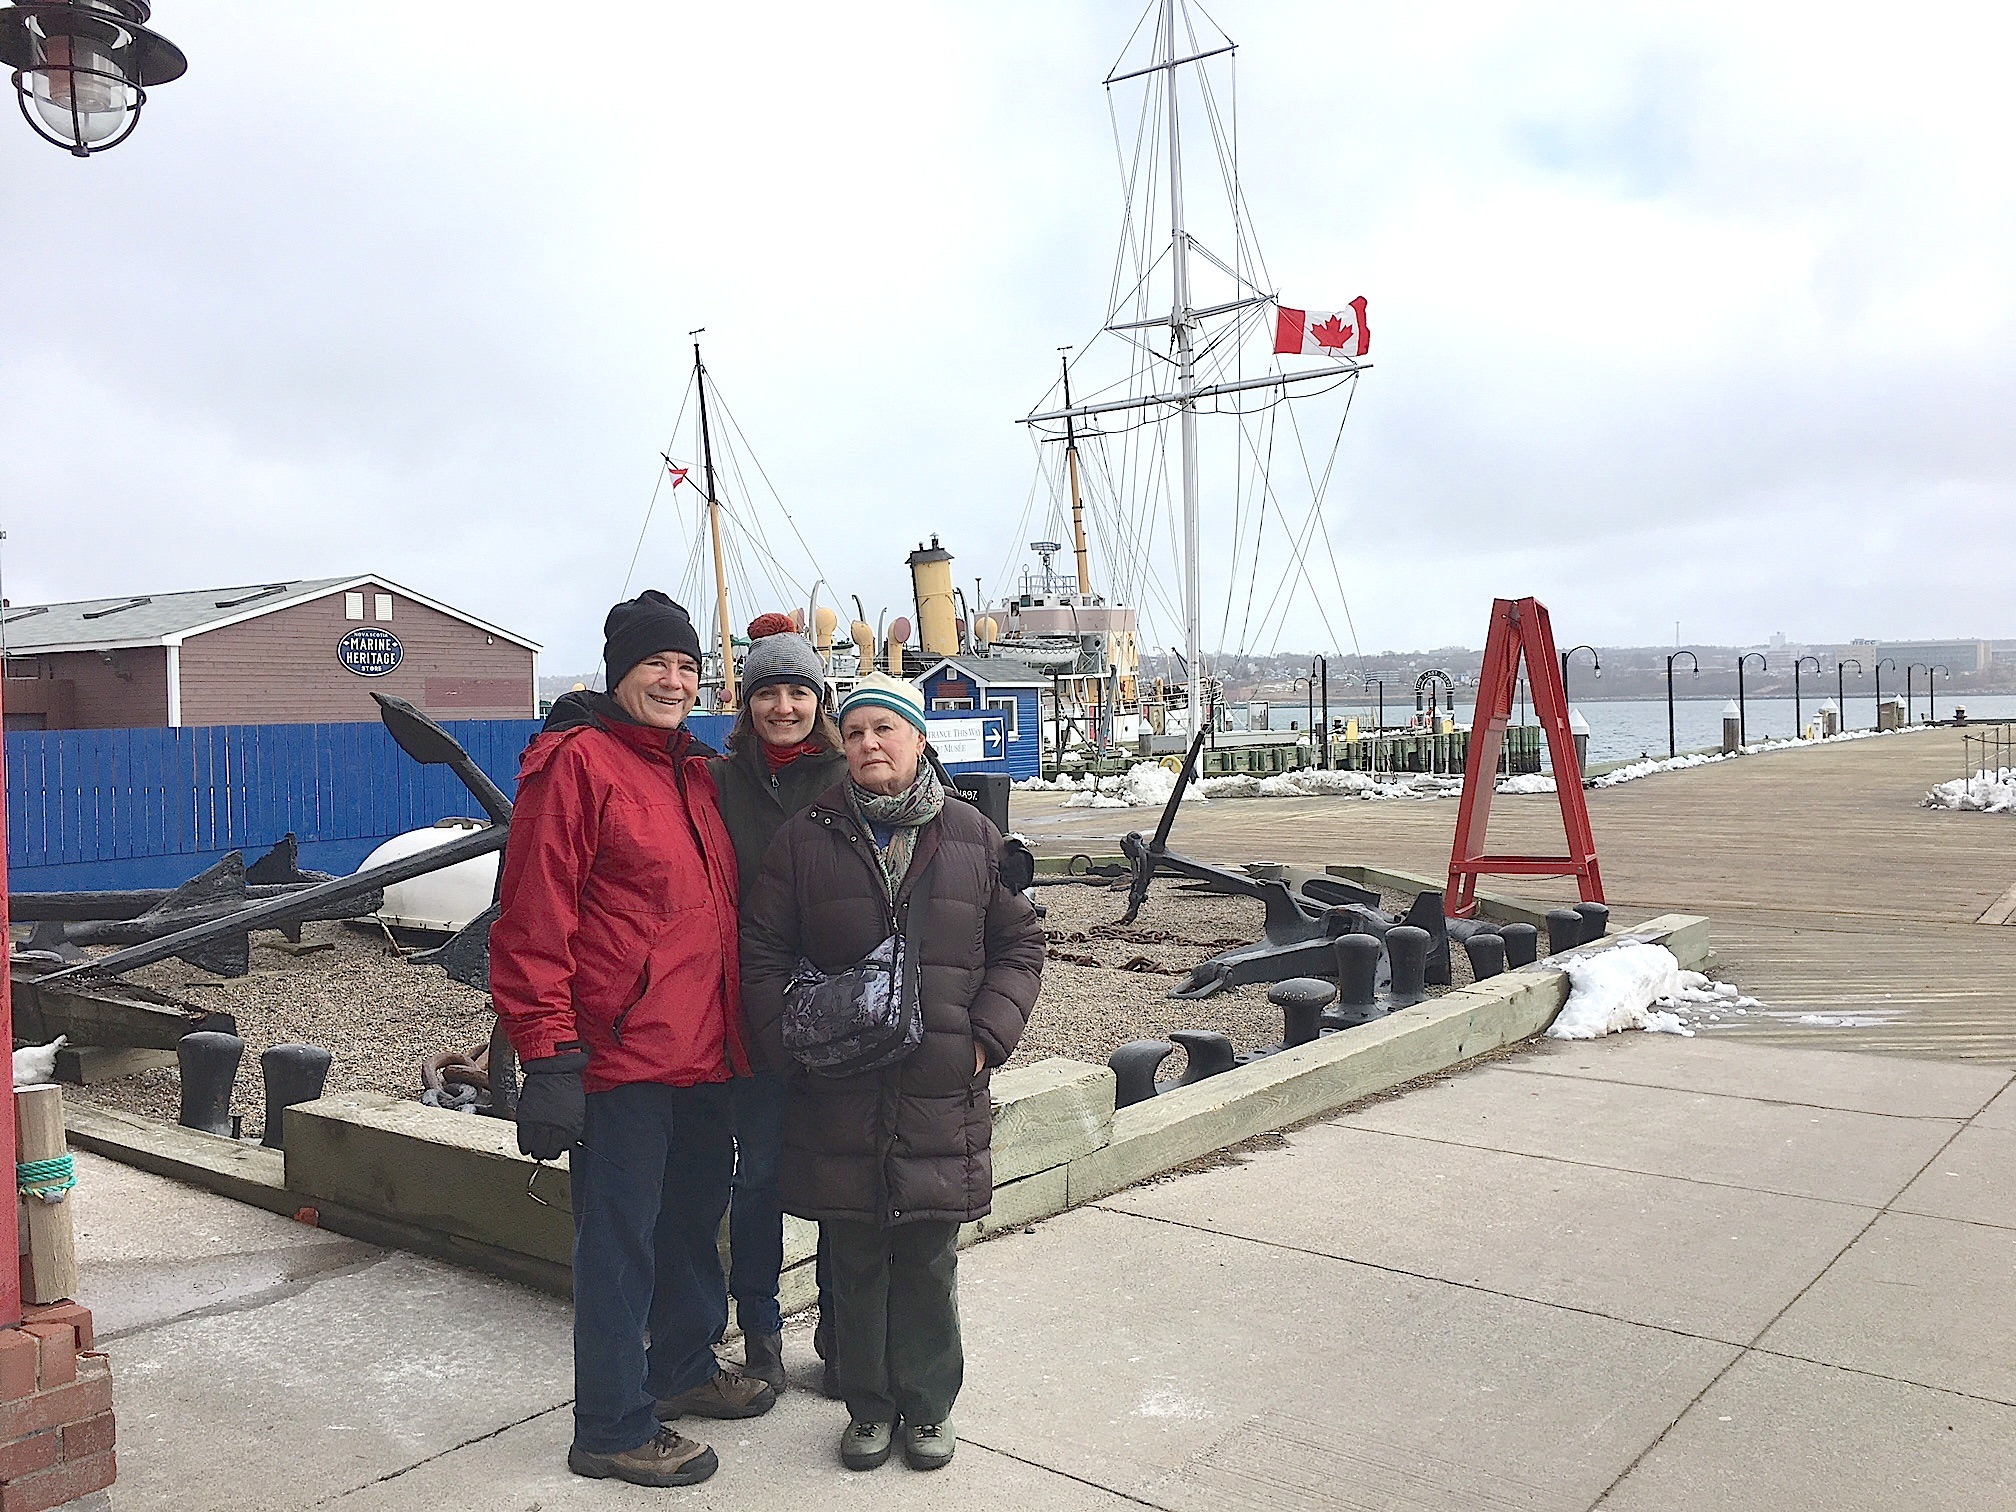 Waterfront of Halifx, NS  John, Wendy, Susan